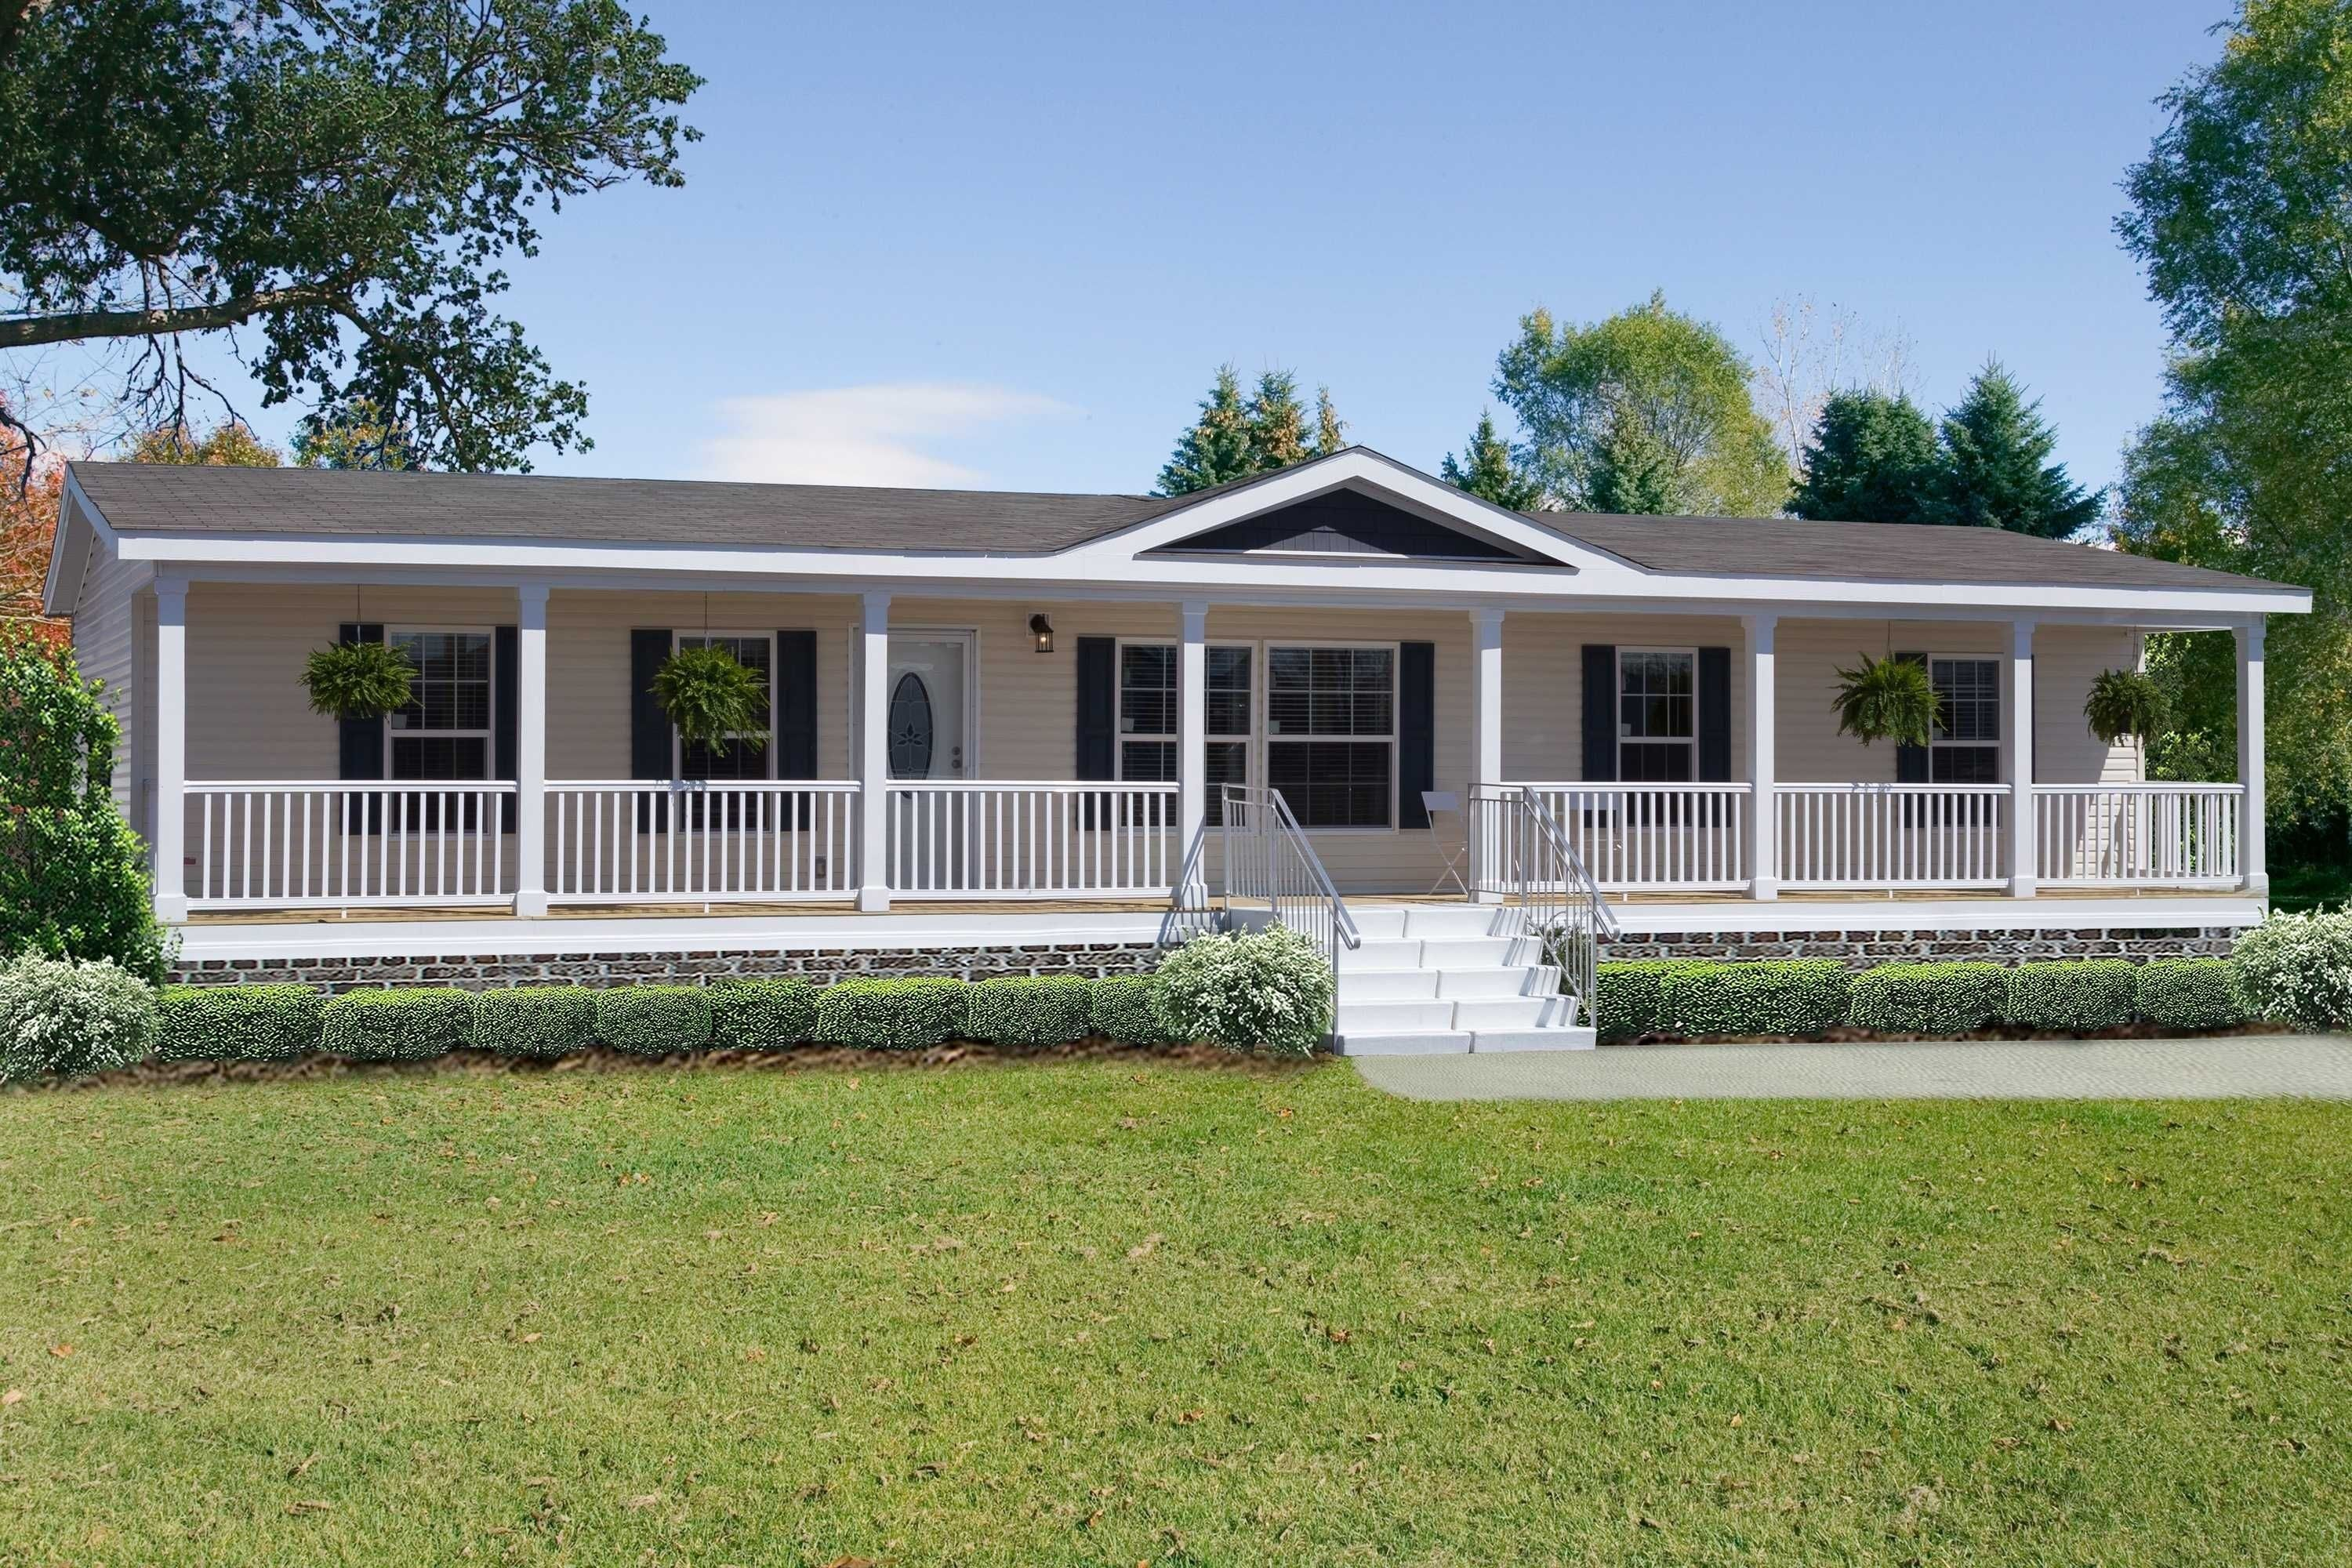 Best Of Front Porch Designs For Double Wide Mobile Homes Bw16i4